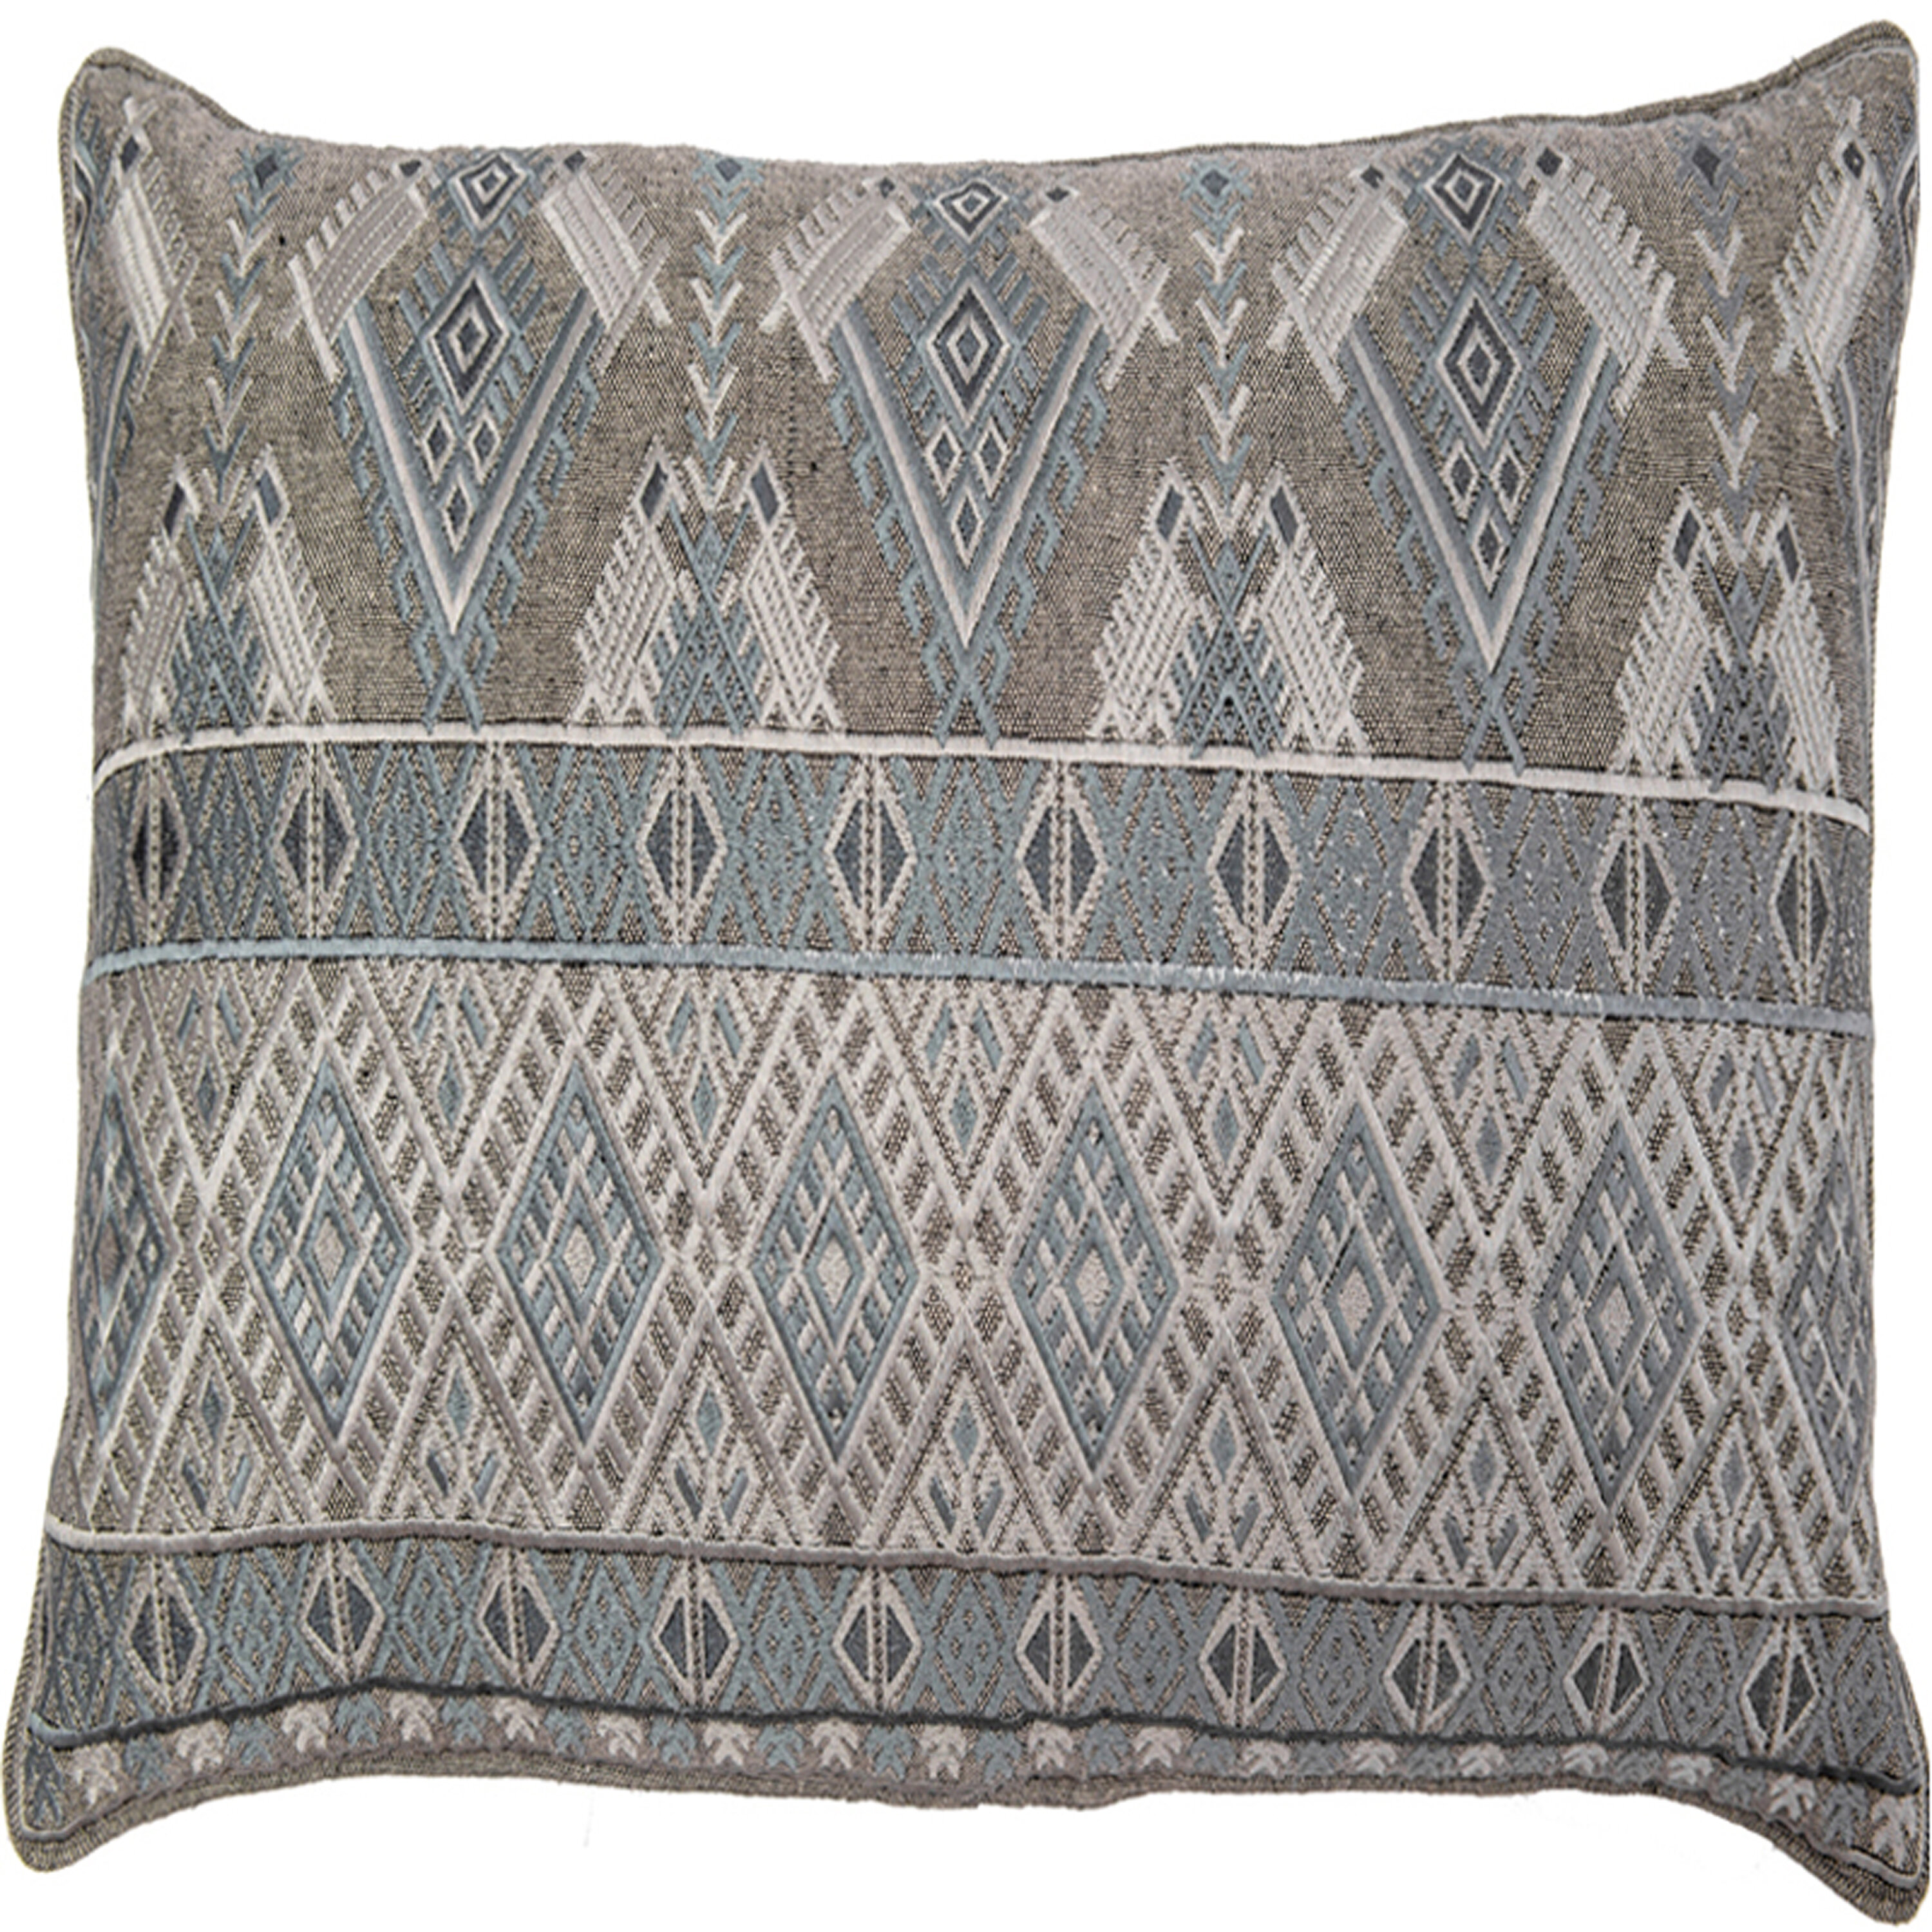 Bloomsbury Market Ouzts Diamond Geo Embroidery Pillow Cover Wayfair